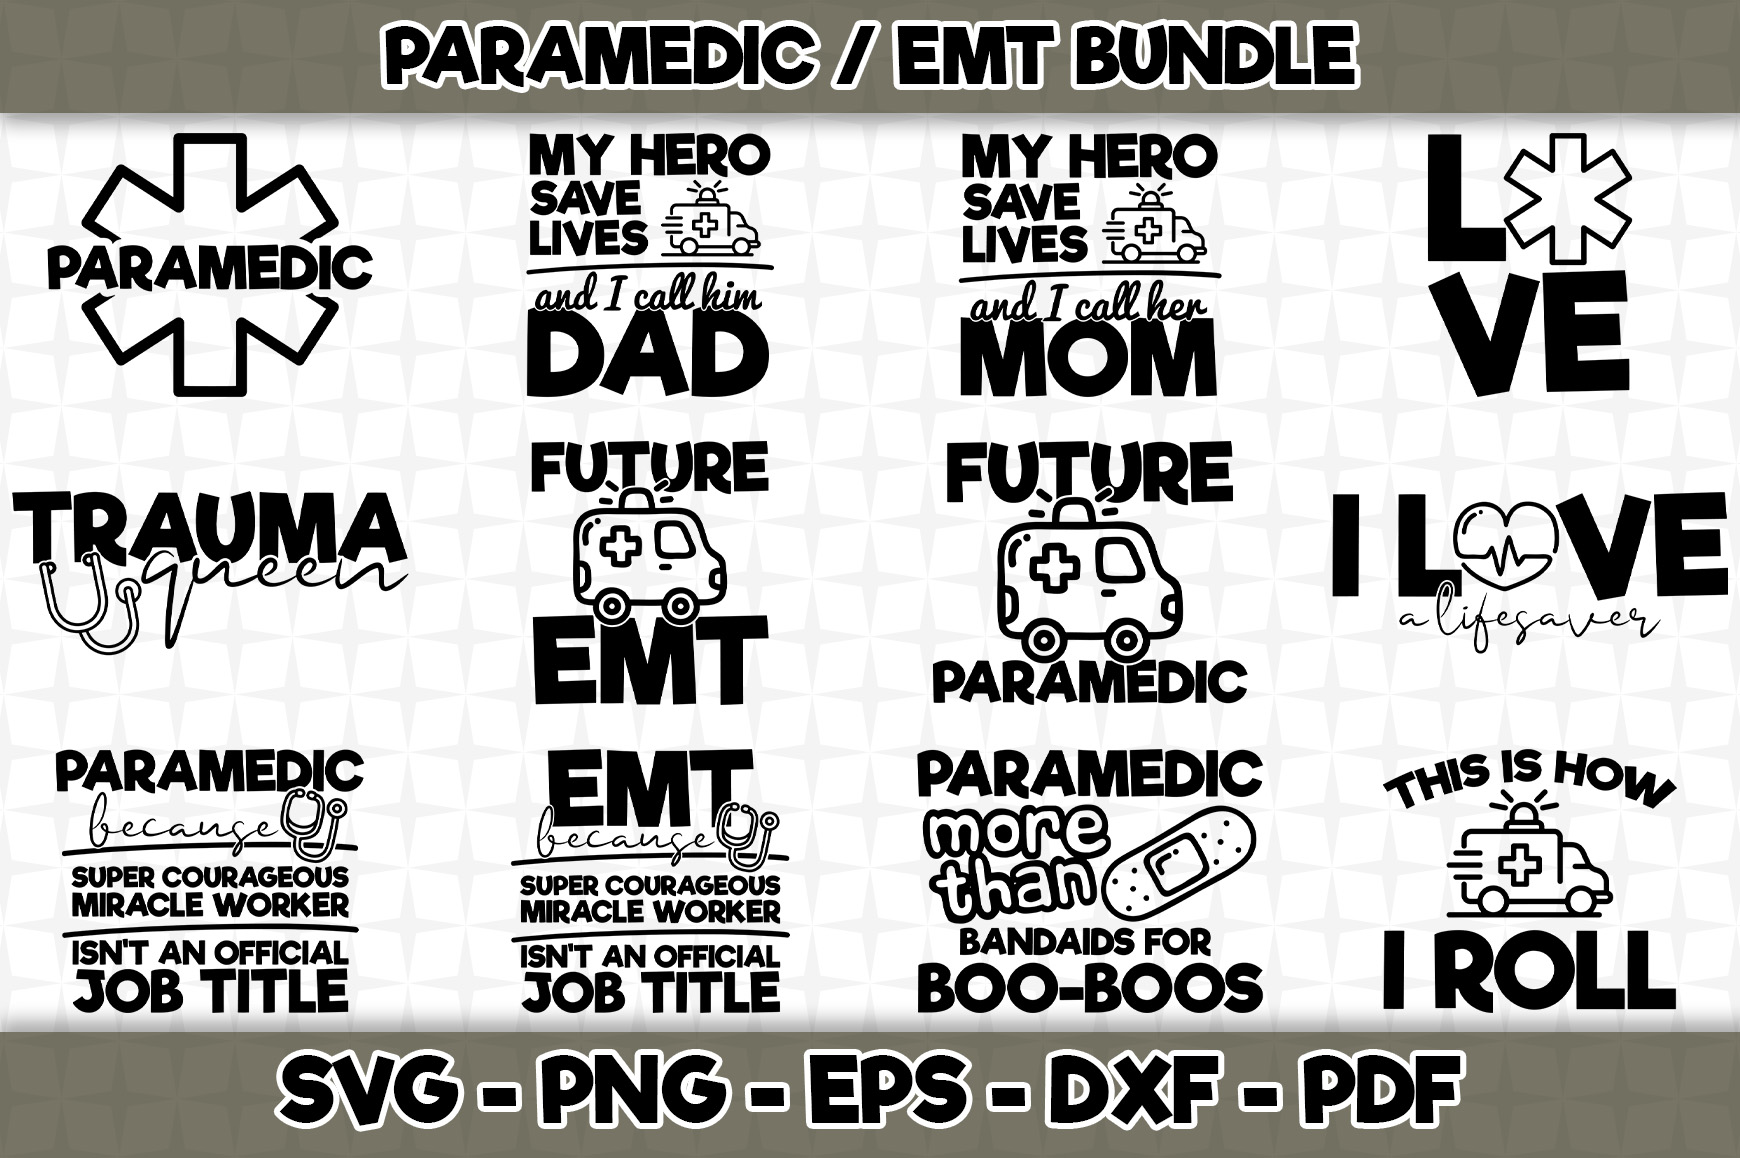 Download Free Paramedic Emt Bundle 12 Designs Graphic By Svgexpress for Cricut Explore, Silhouette and other cutting machines.